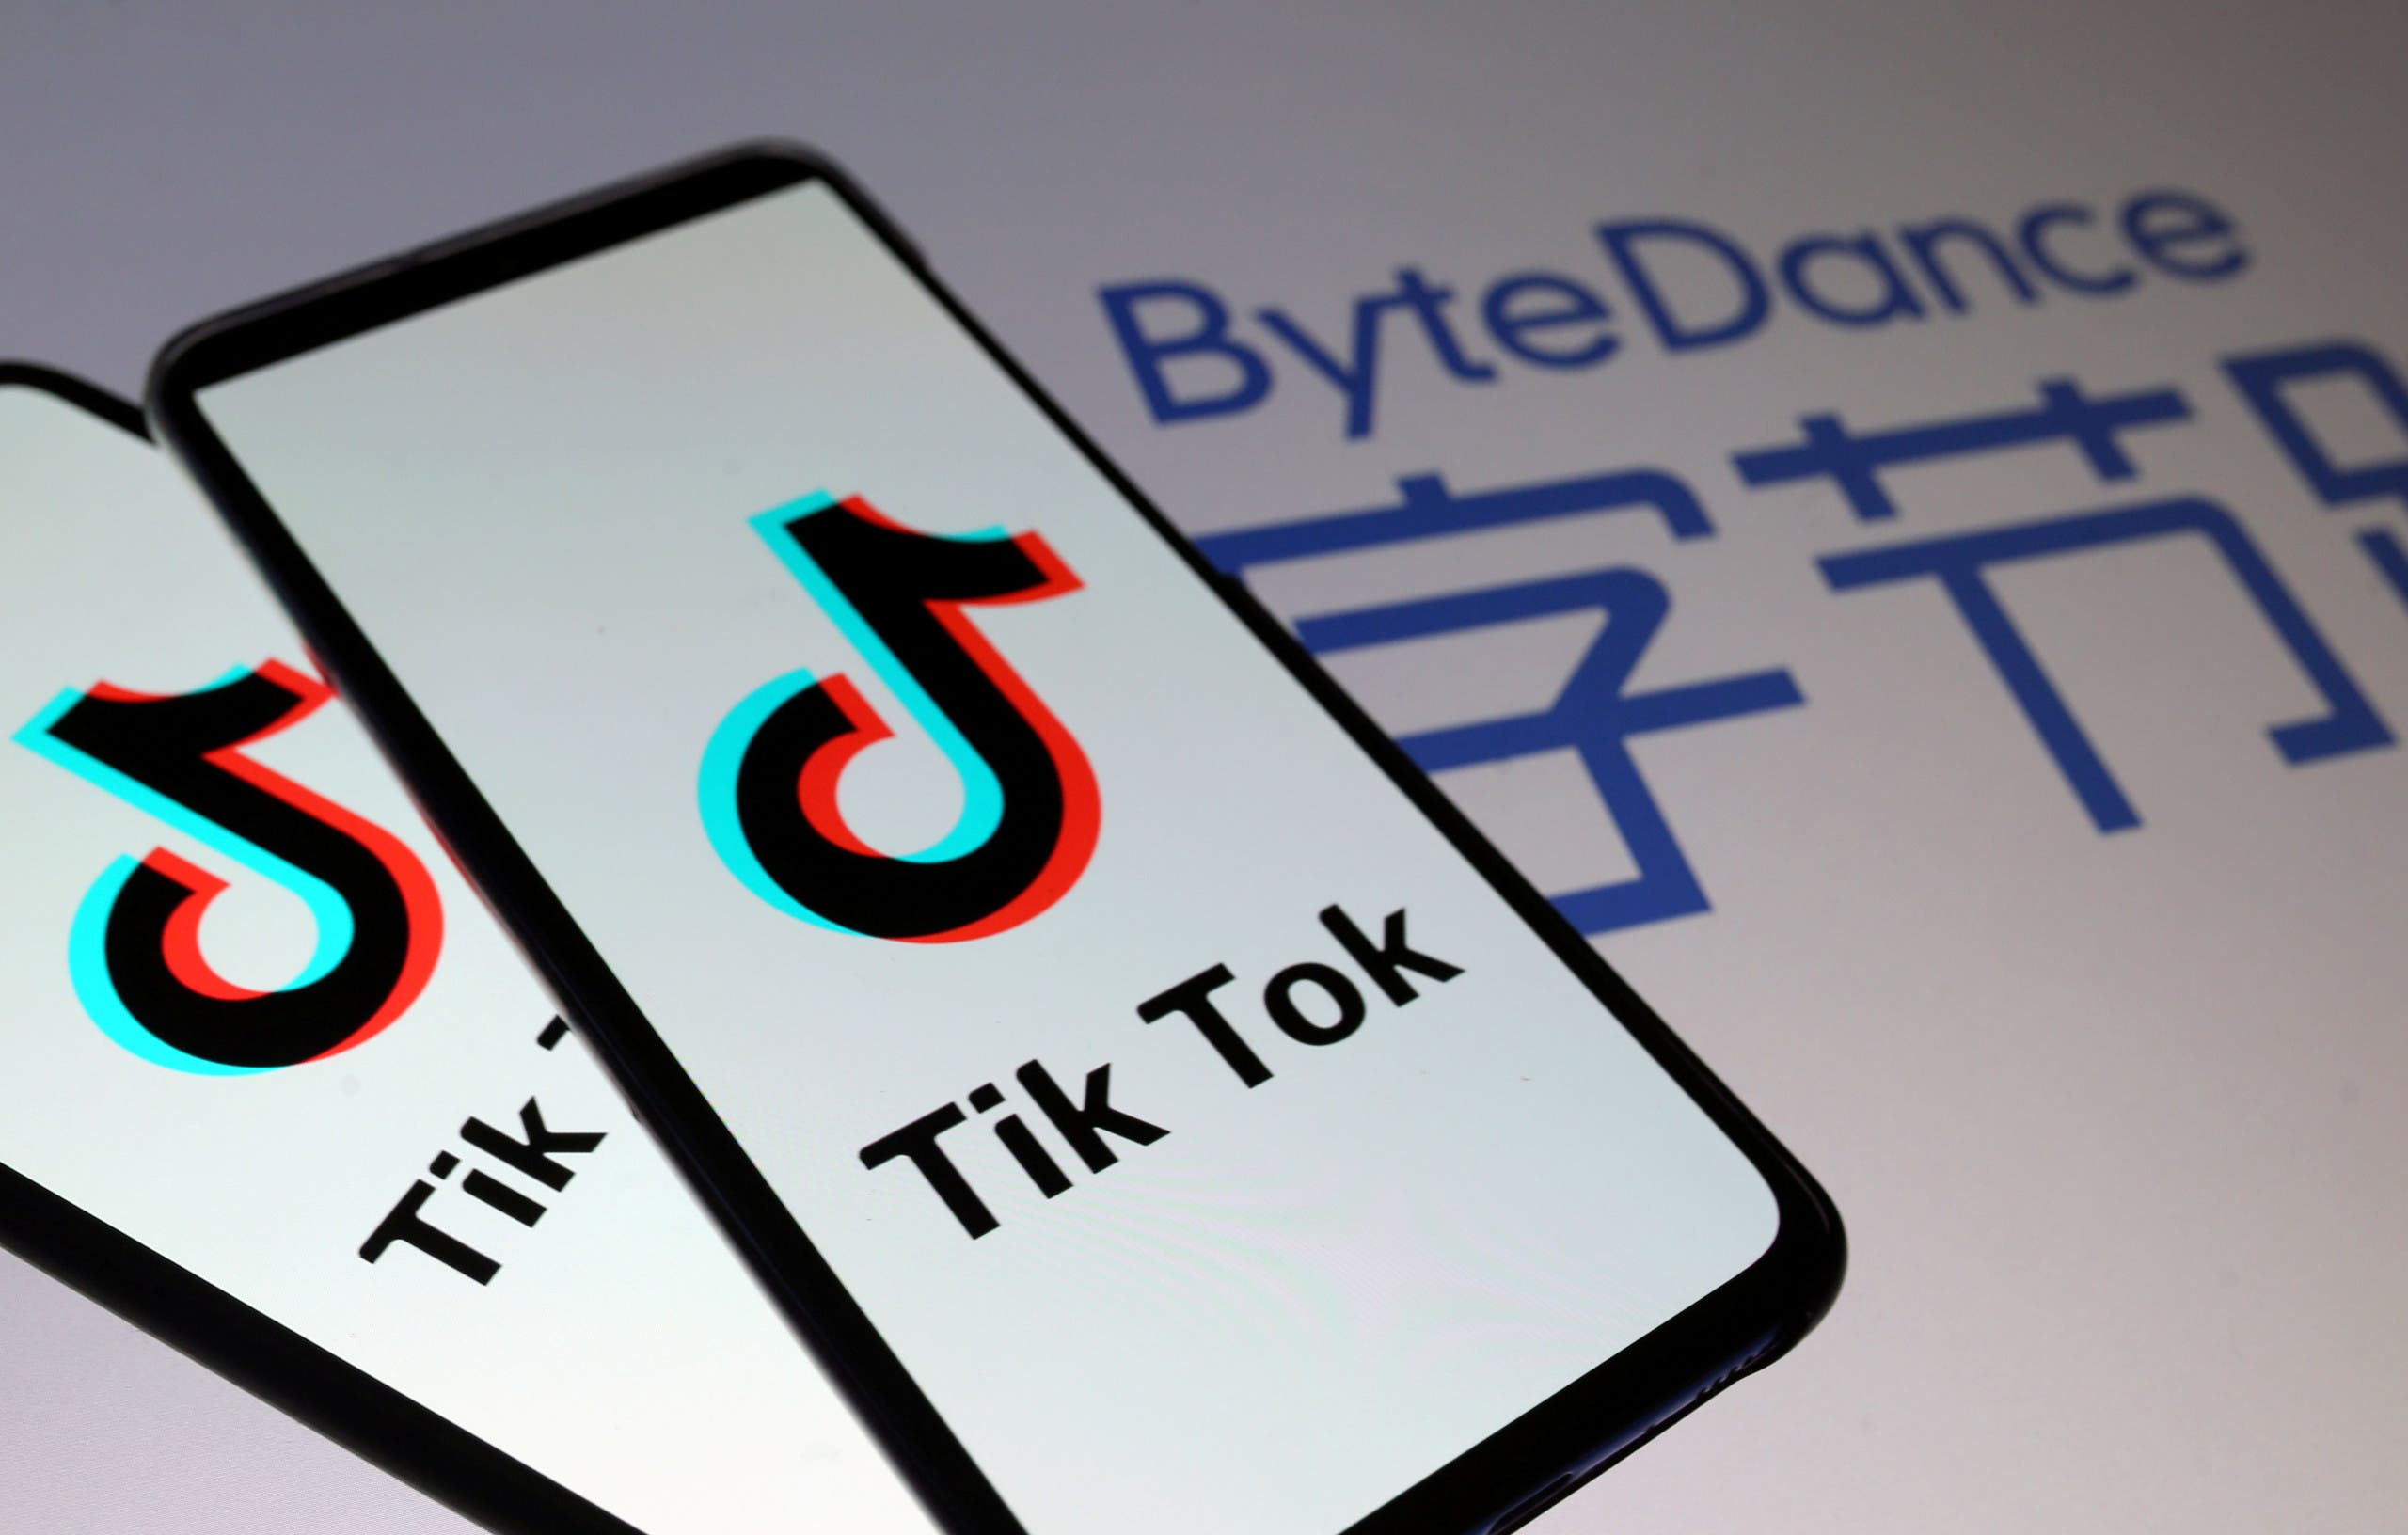 Tik Tok logos are seen on smartphones in front of a displayed ByteDance logo in this illustration. (Reuters)